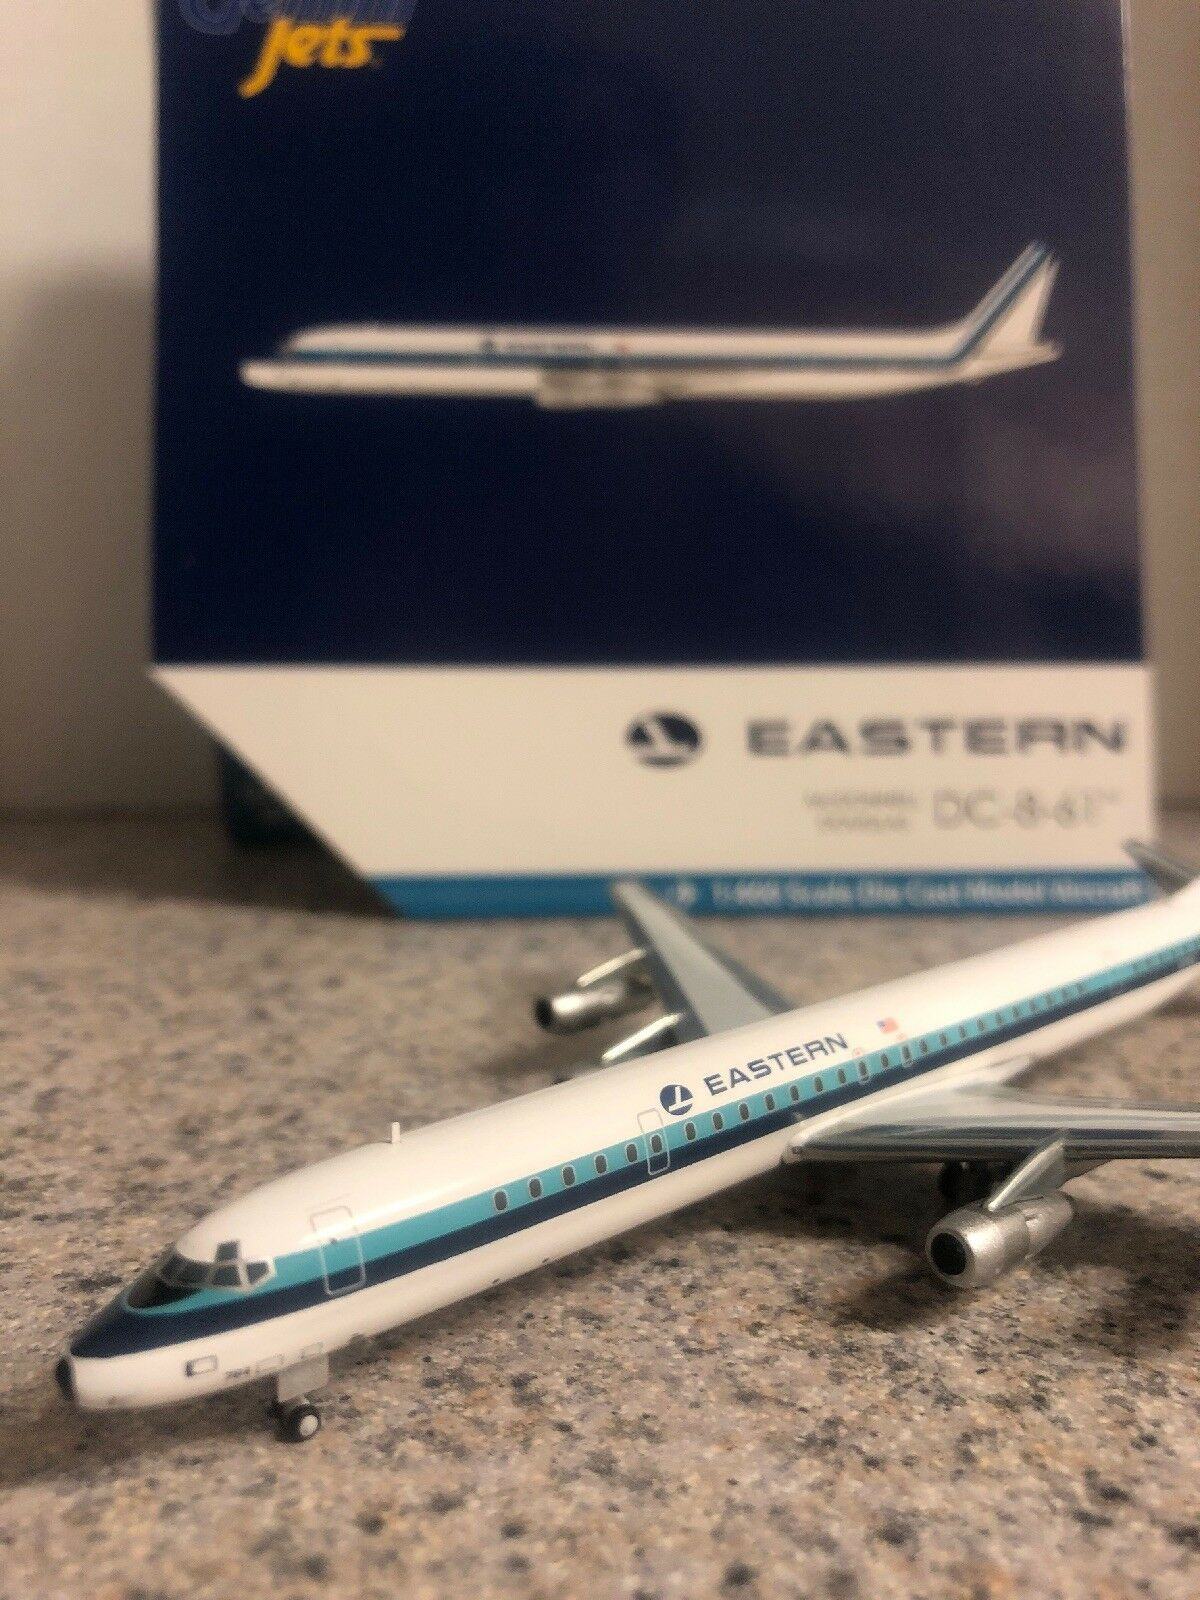 GJ 400 scale diecast model Eastern Airlines DC-8-61 Commercial Airliner N8764